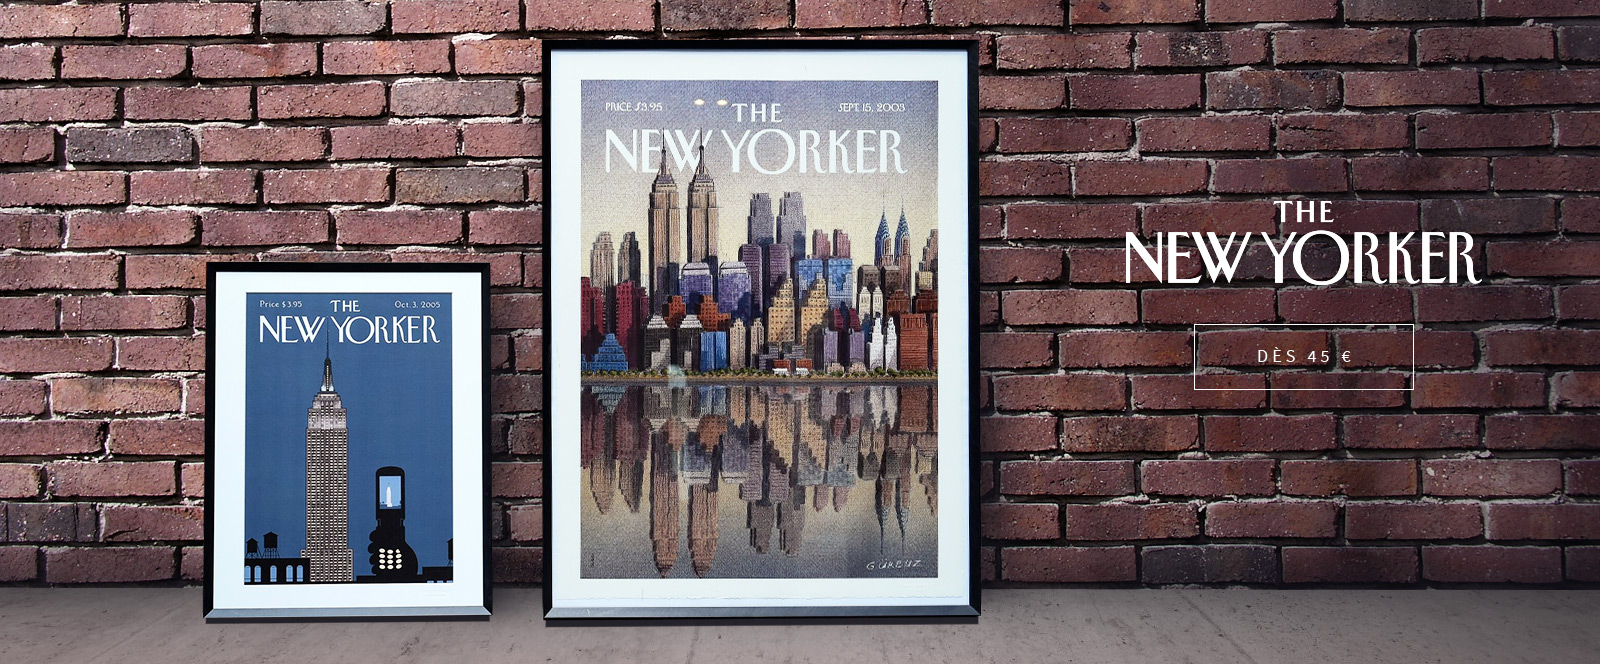 The Newyorker